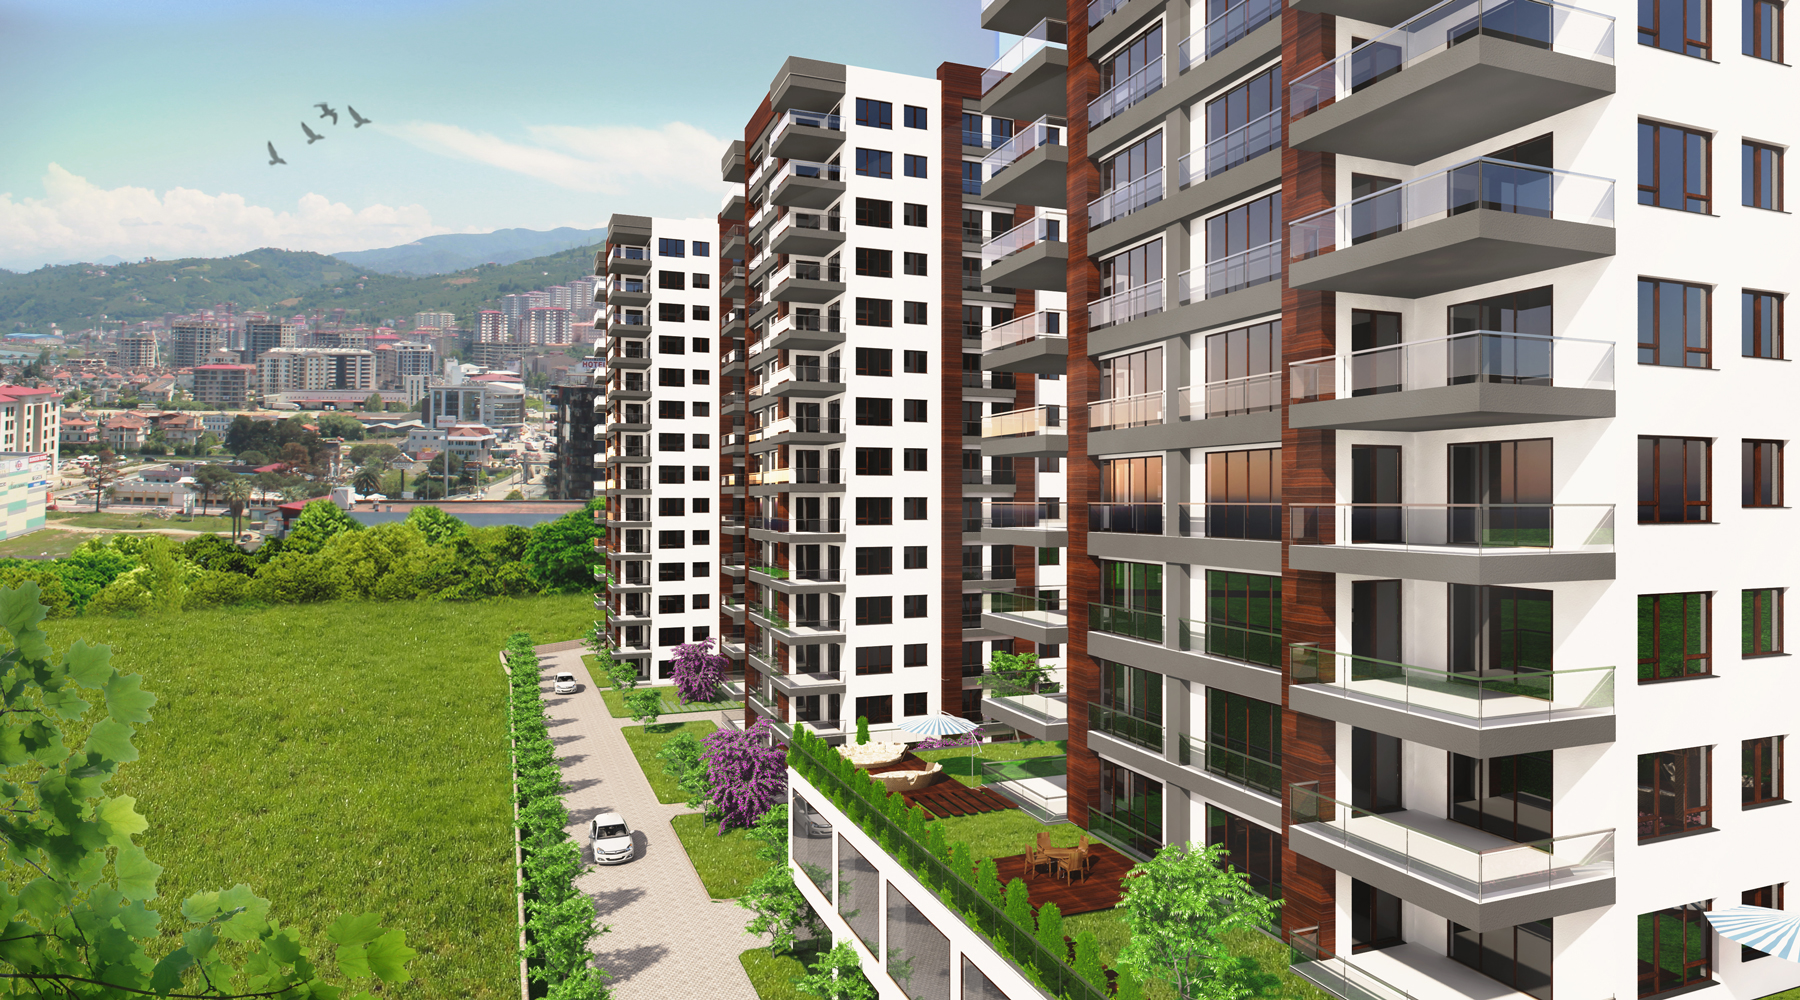 TRABZON TOWERS